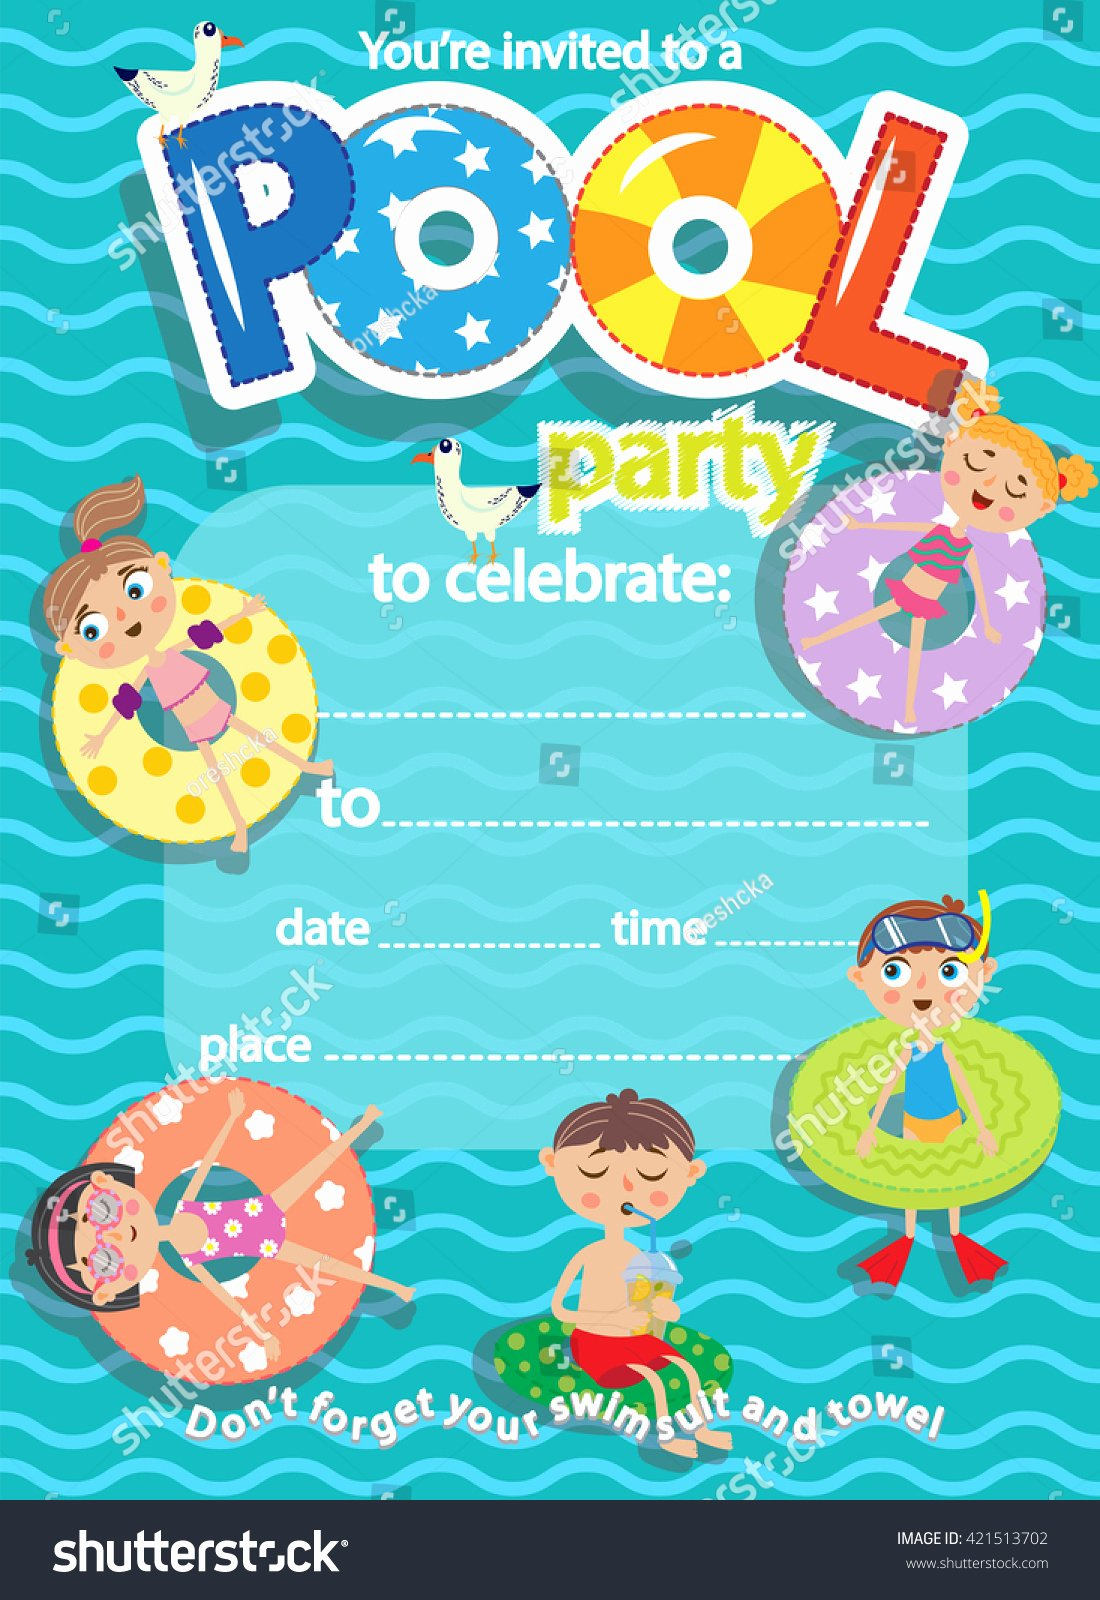 Pool Party Invite Template Best Of Pool Party Invitation Template Card Kids Stock Vector